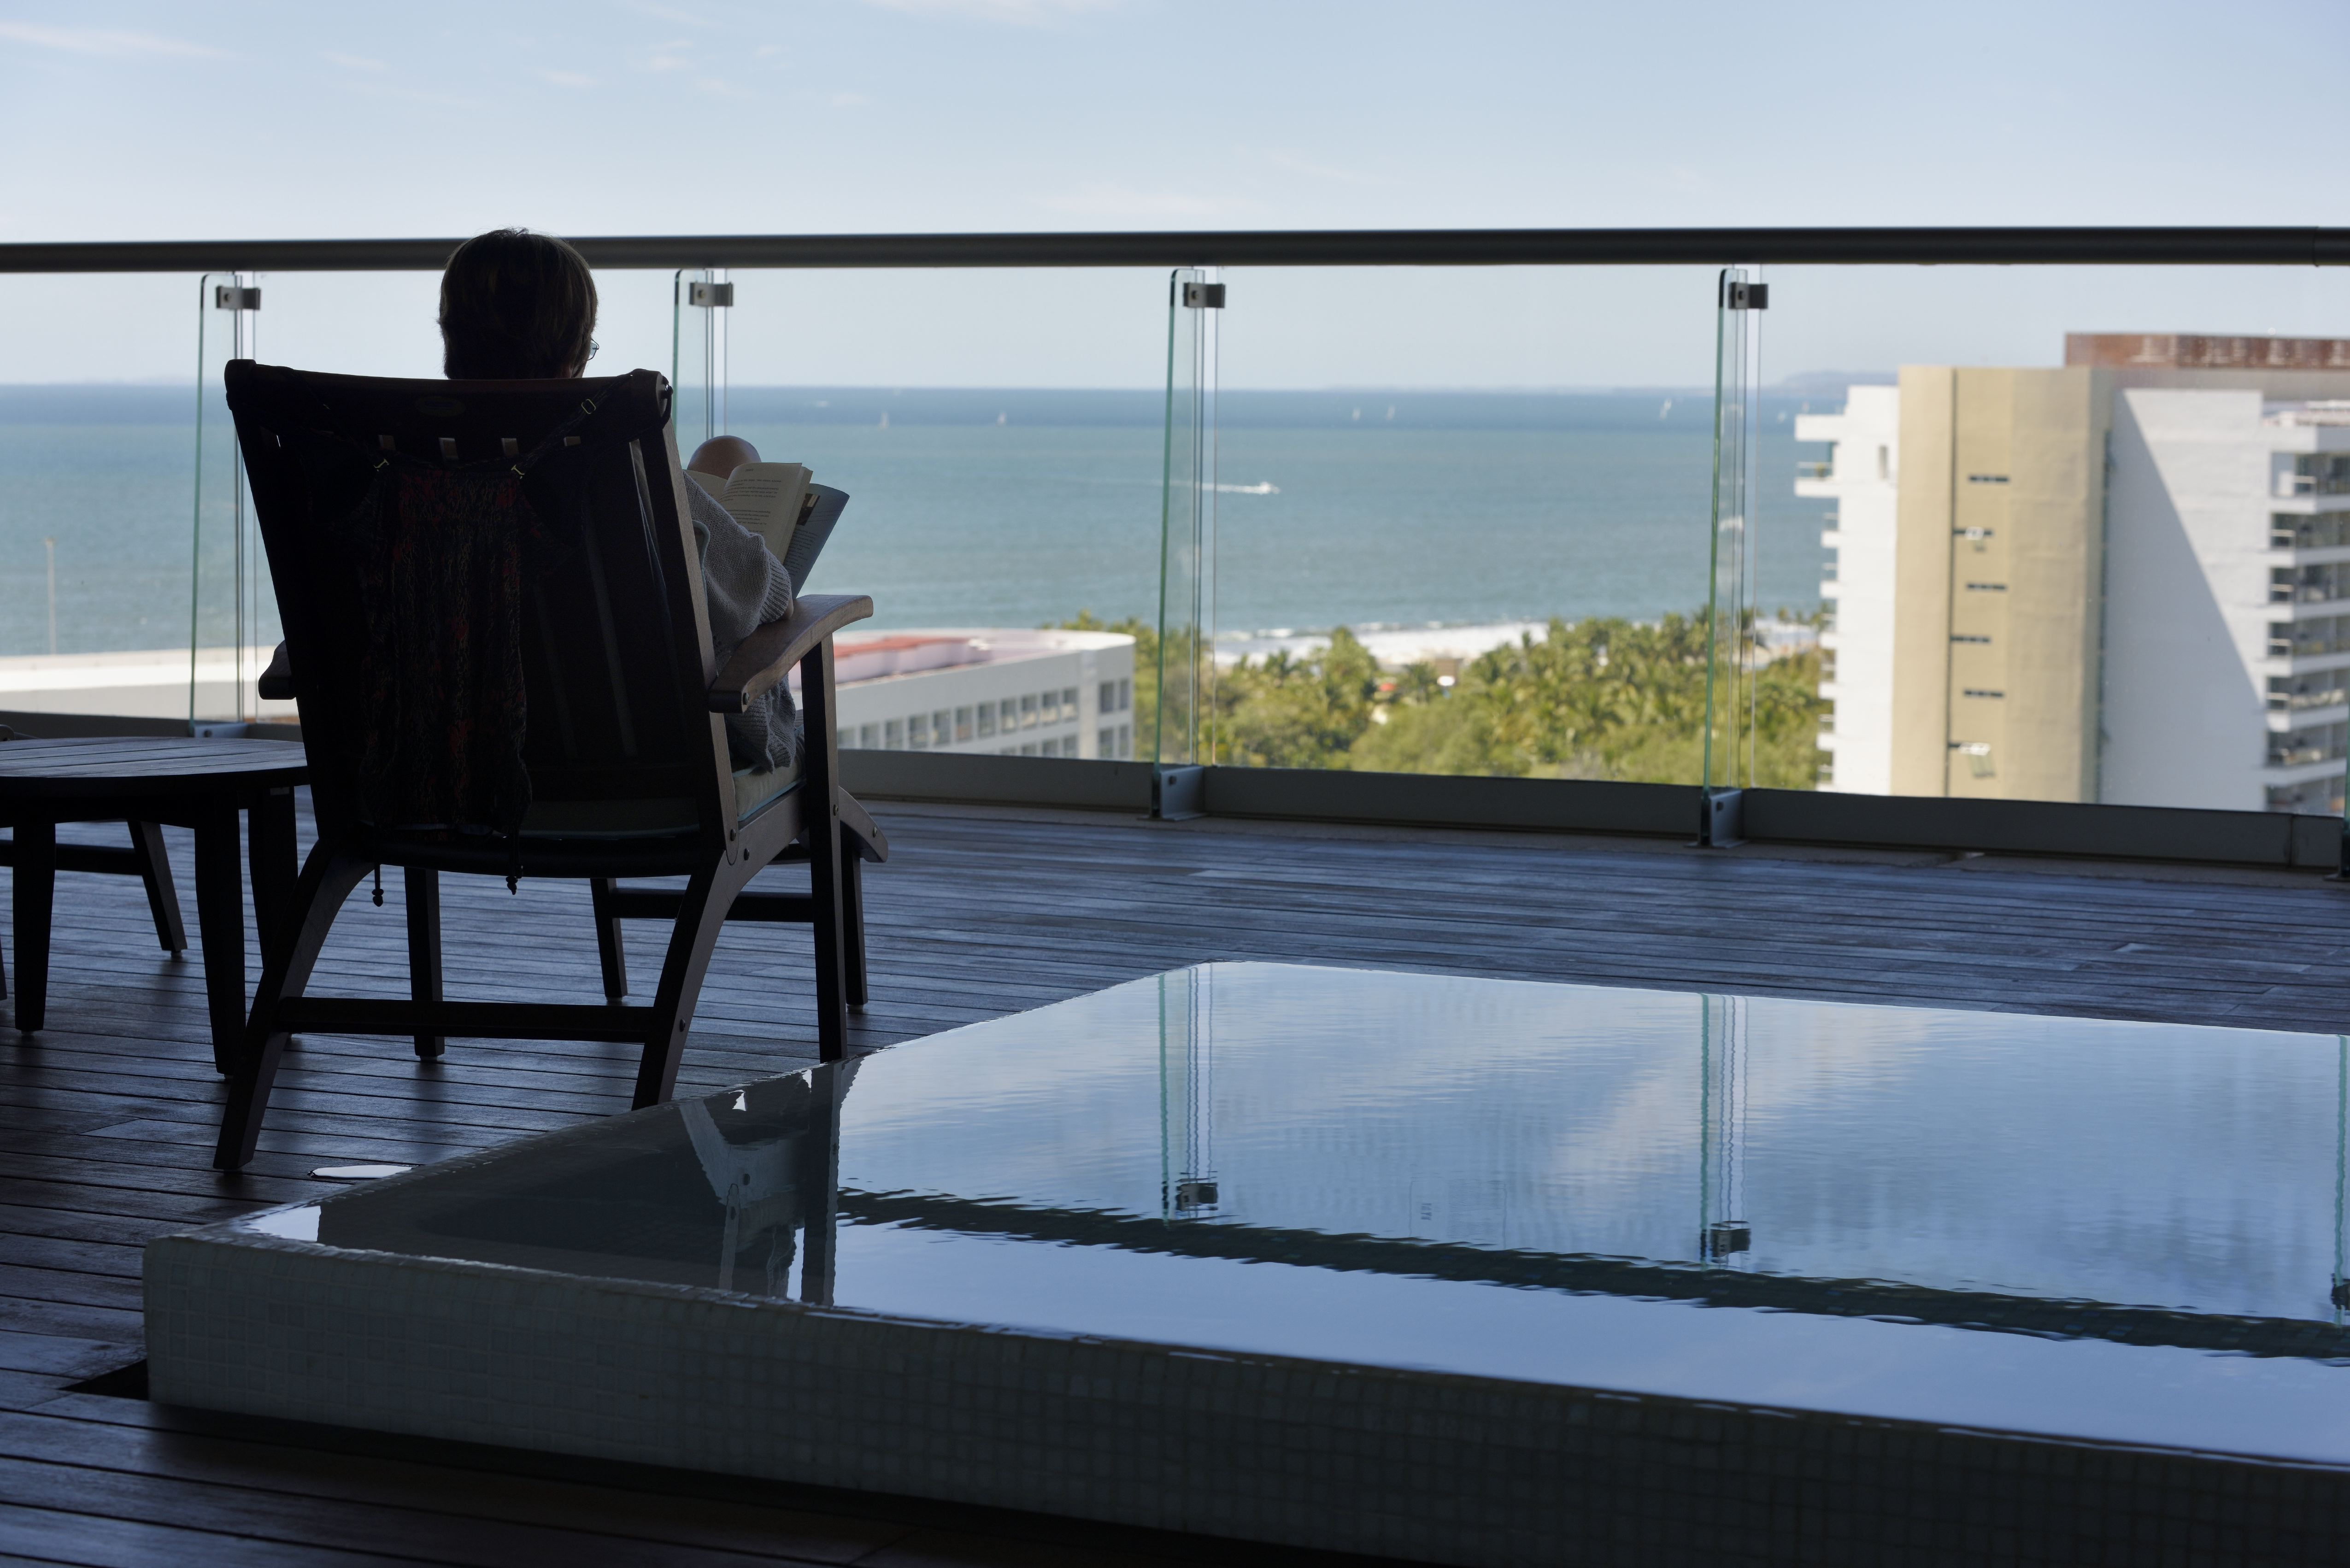 Tourist reading a book on the balcony of the penthouse suite Vidanta Nuevo Vallarta Mexico